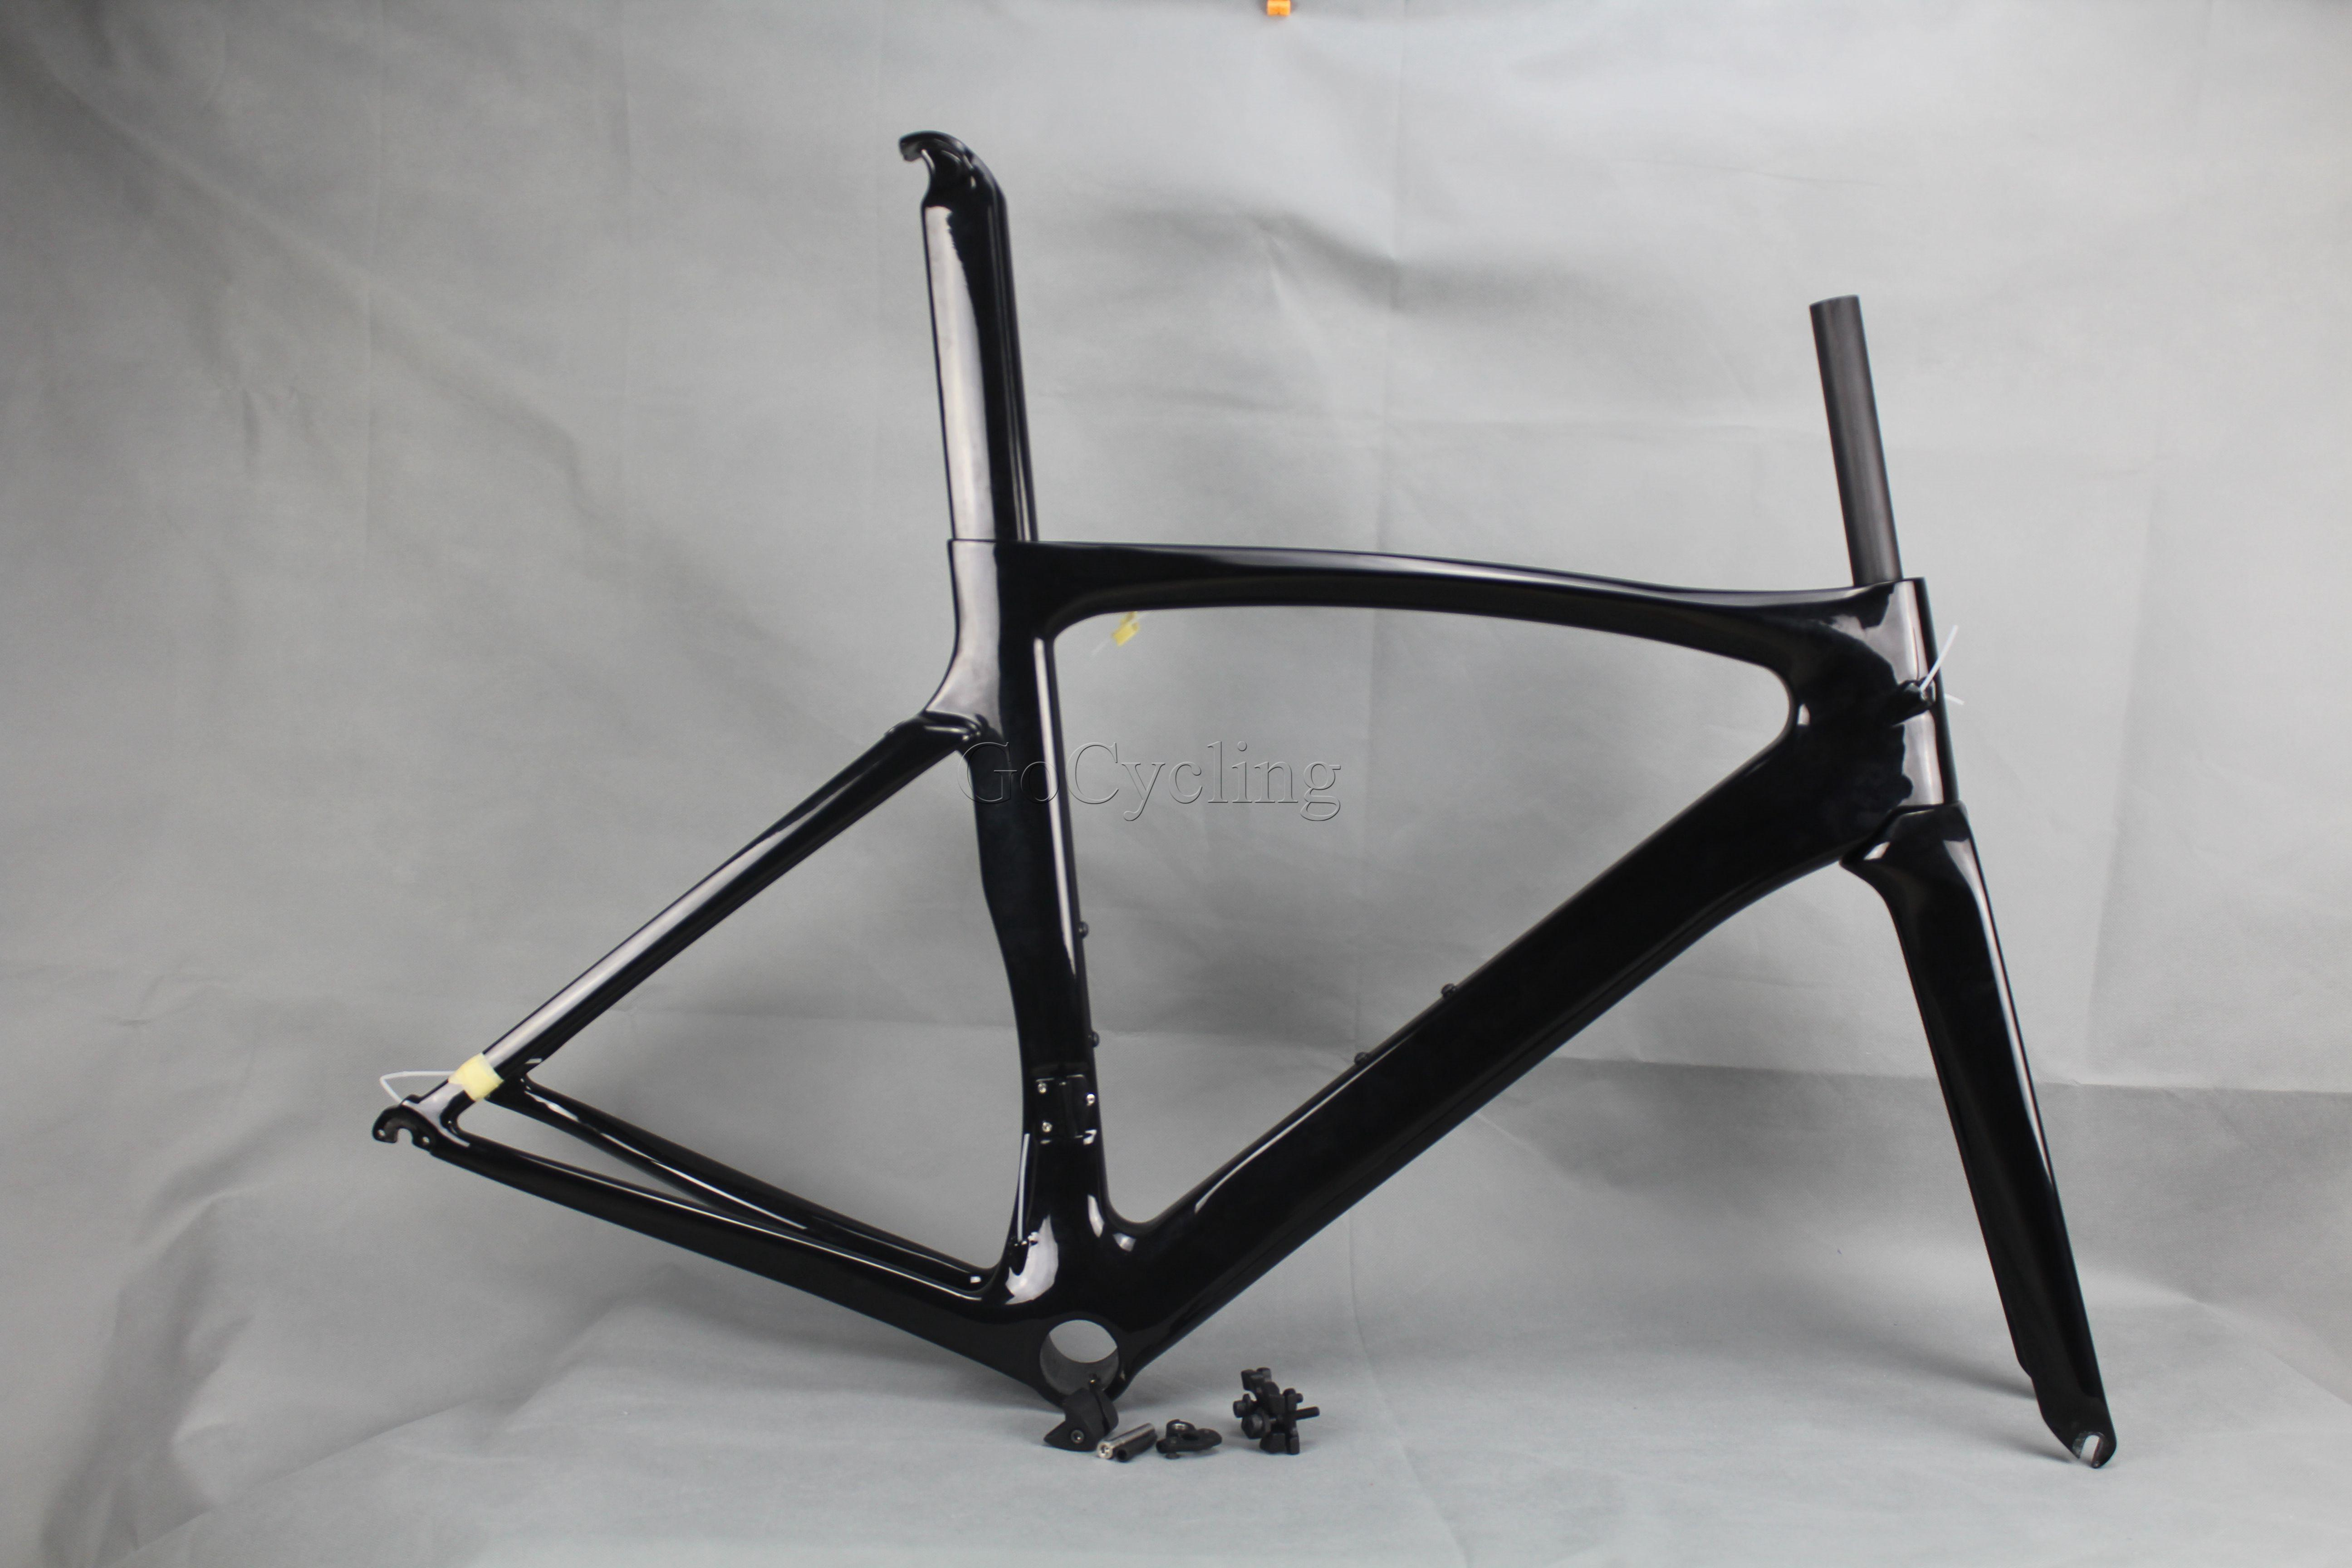 2016 carbon road bike frames Black glossy racing bicycle frame cycling frameset without decals clear coat